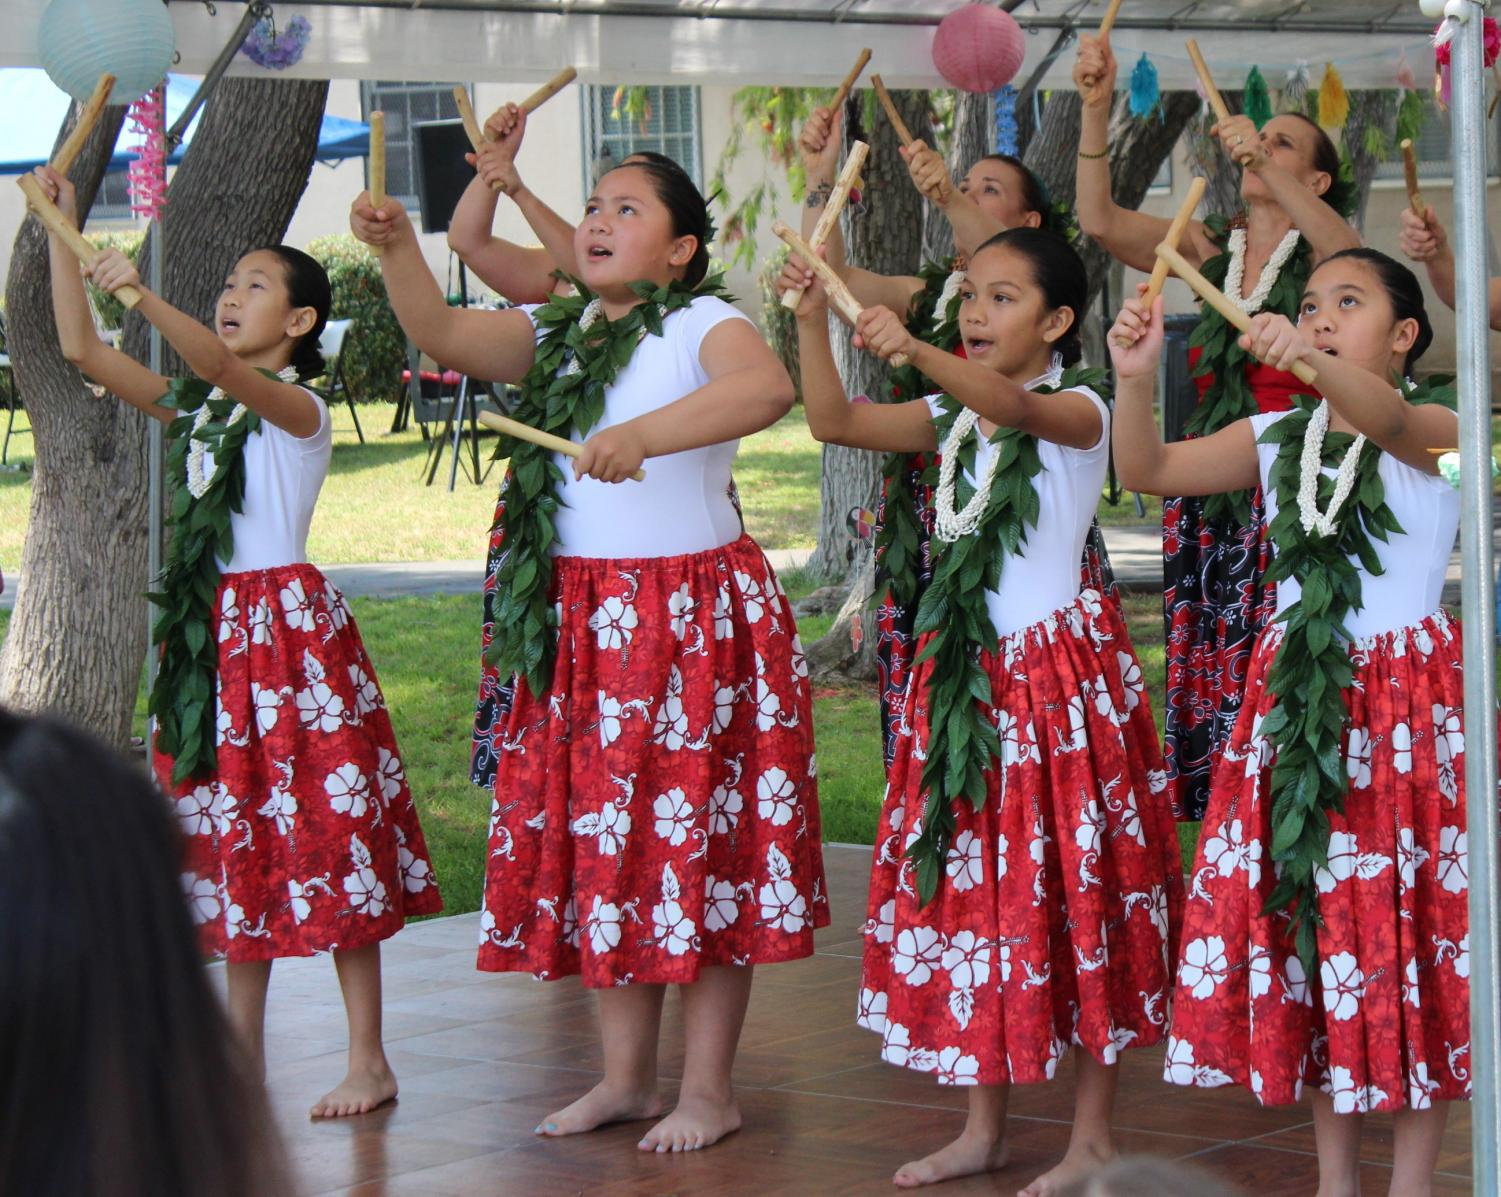 The+Hula+Dance+Troupe+perform+on+the+outdoor+stage+during+Pearl+Con+IV+on+May+11.